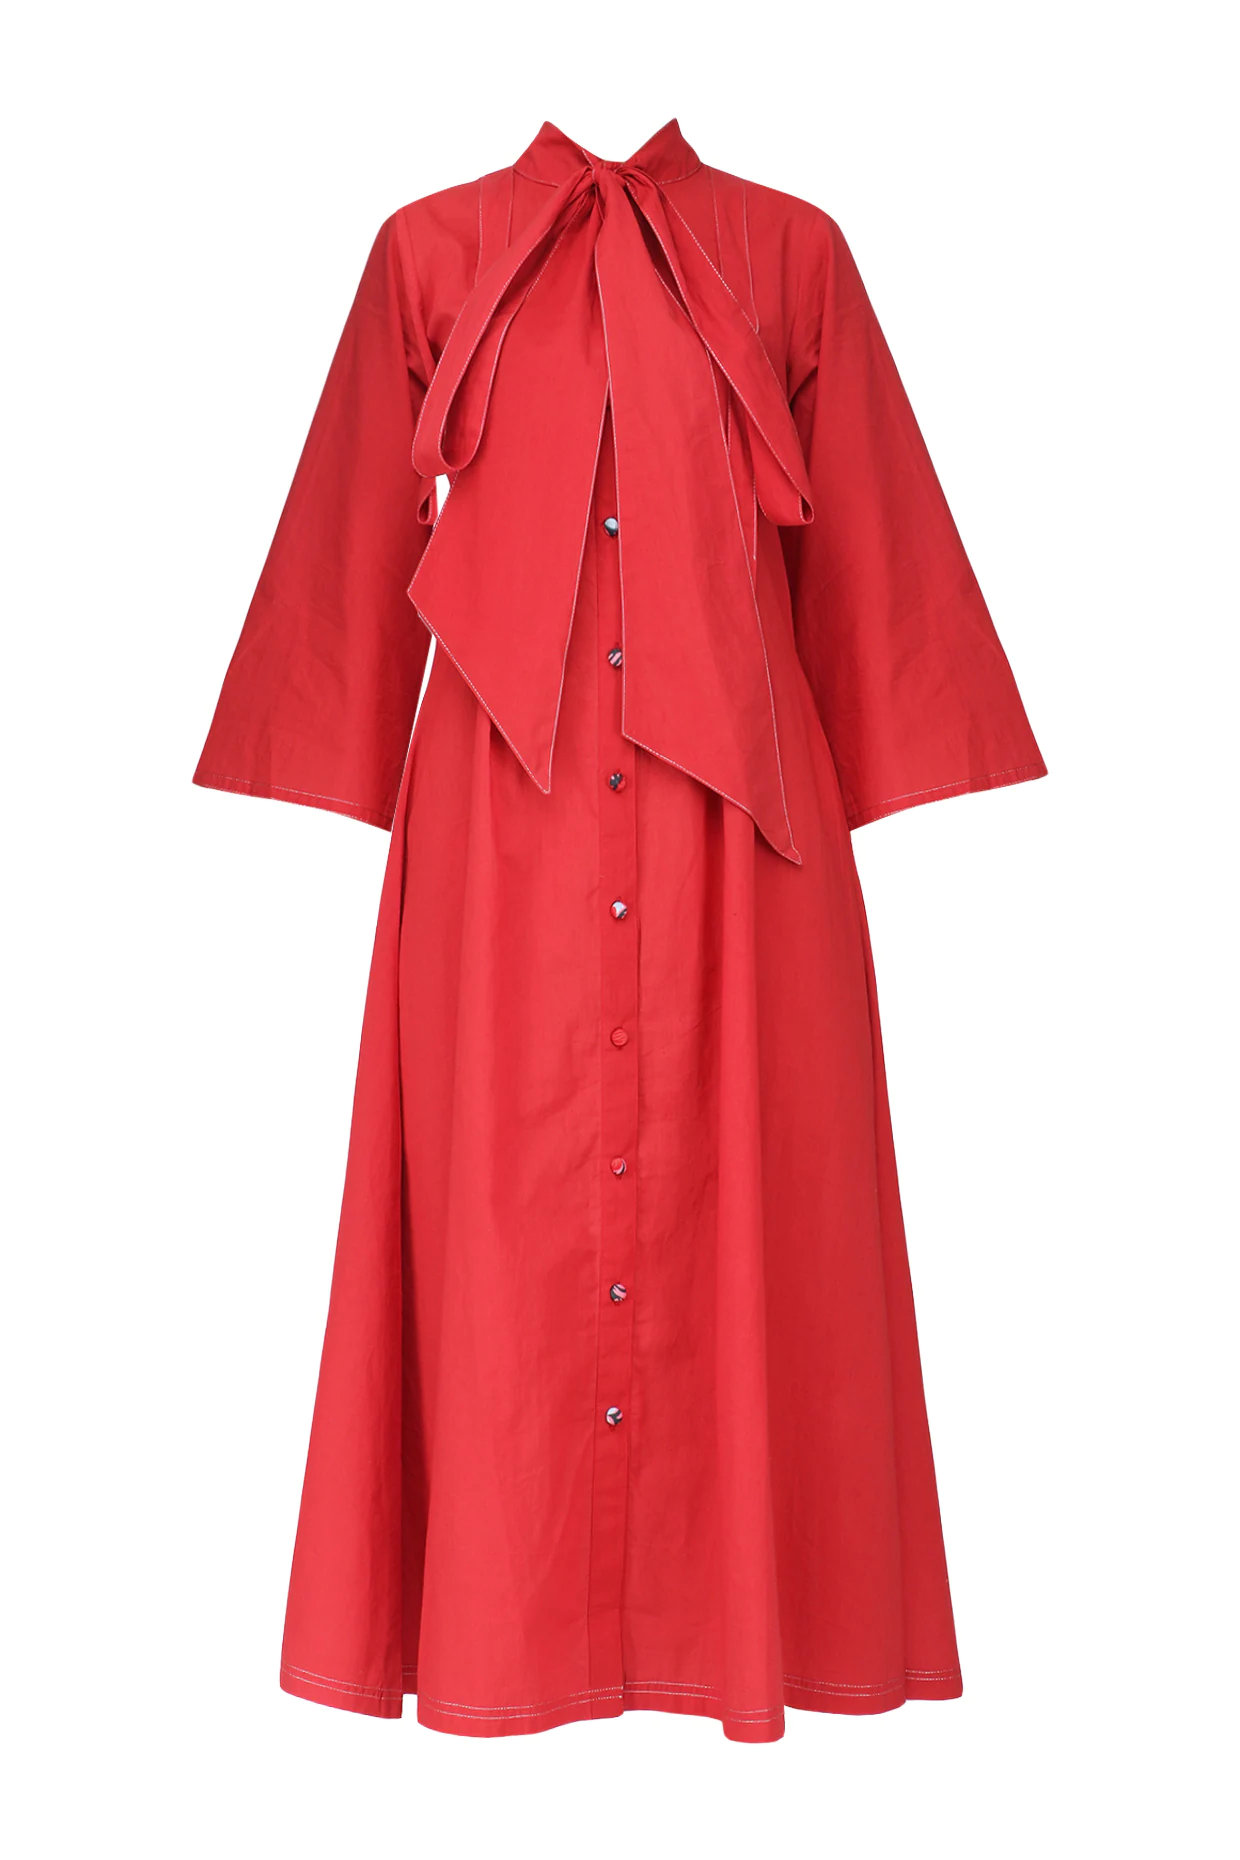 Red Tie-Up Flared Midi Dress by Surendri